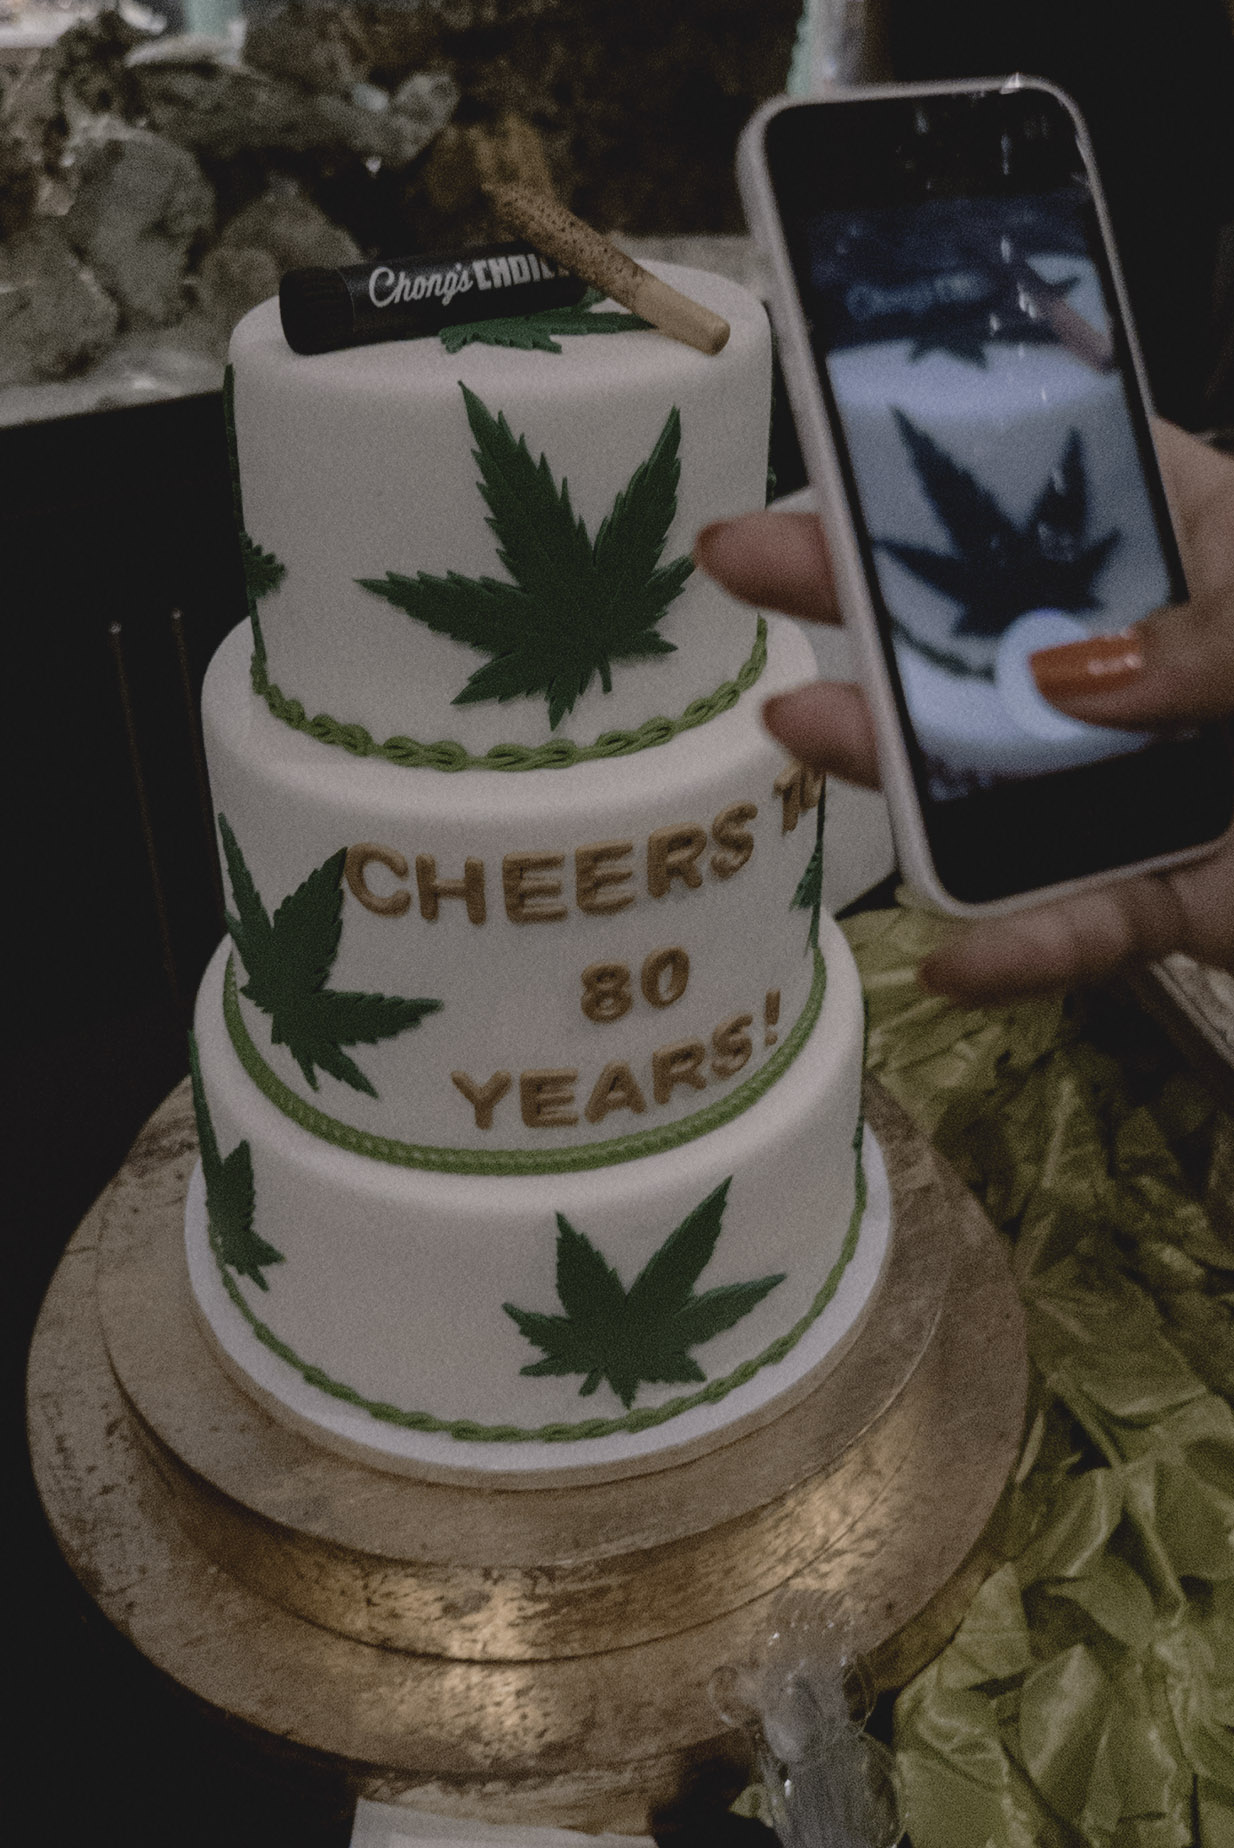 tommy chongs birthday cake